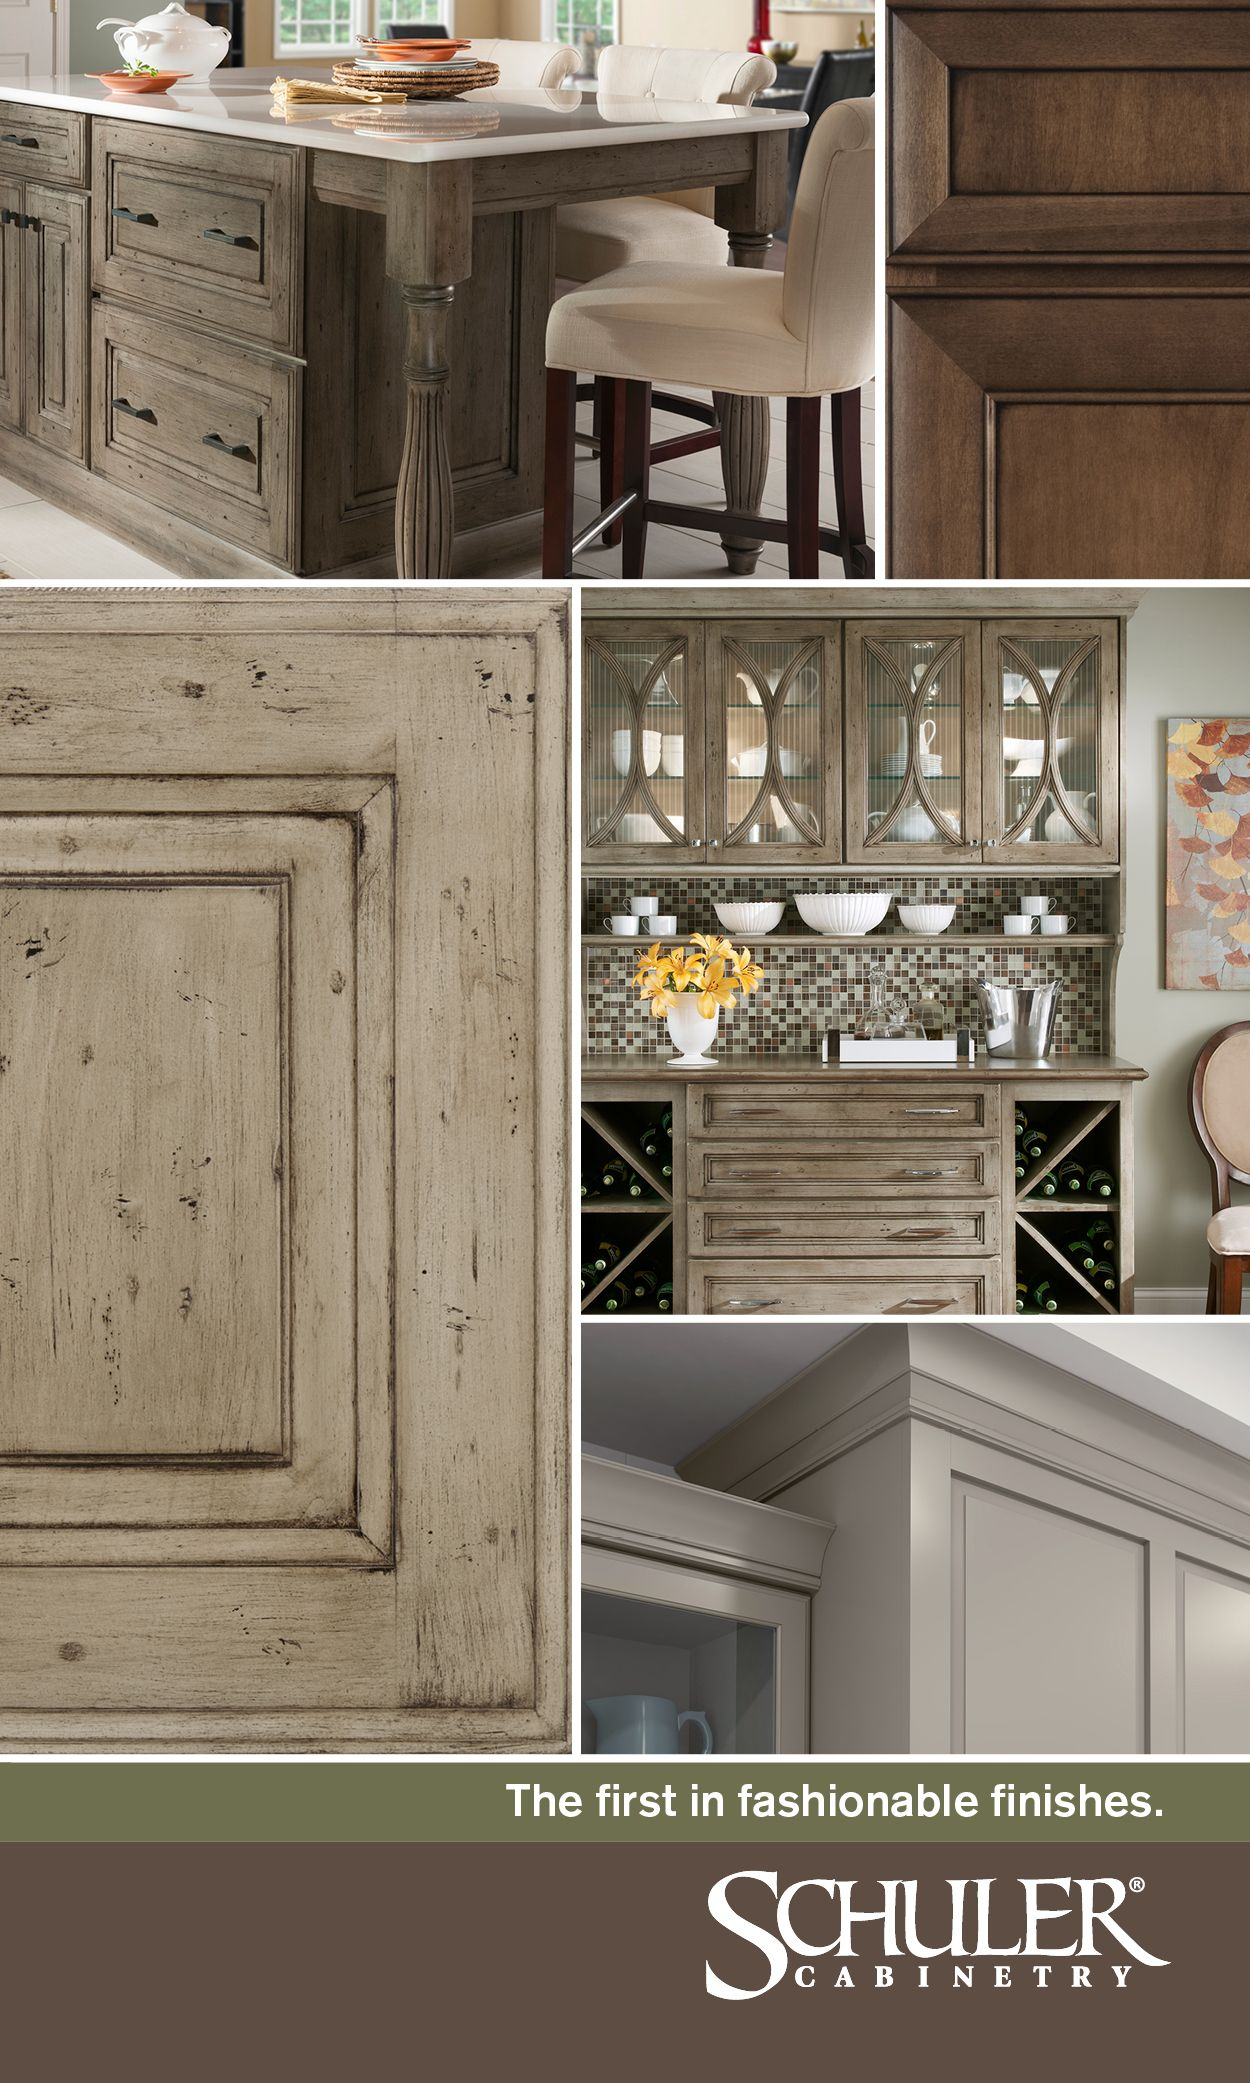 Schuler Cabinetry Is The First In Fashionable Finishes Beautifulappaloosa Runningfree Followo Lowes Kitchen Cabinets Kitchen Cabinets Kitchen Design Decor